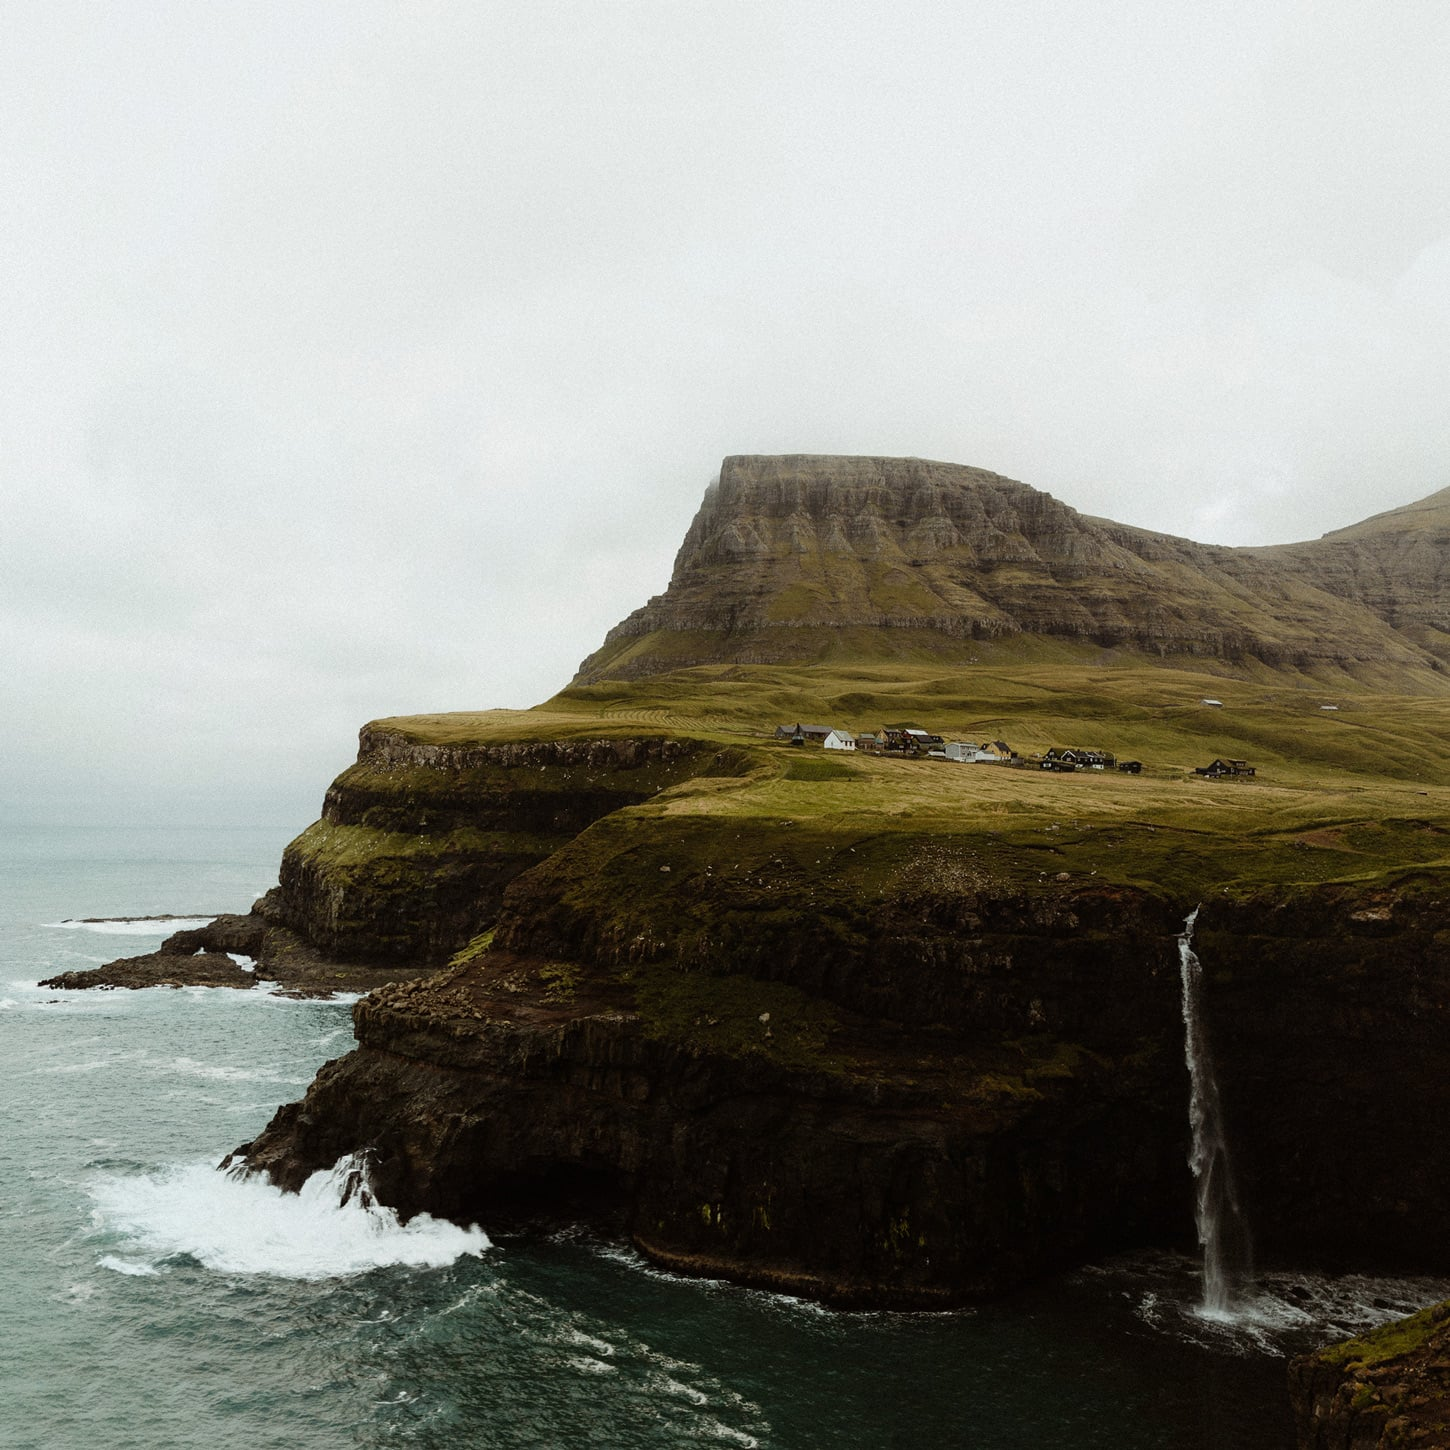 Gasadalur in the Faroe Islands by Levi Tijerina Intimate adventure elopement photographer in the Faroes